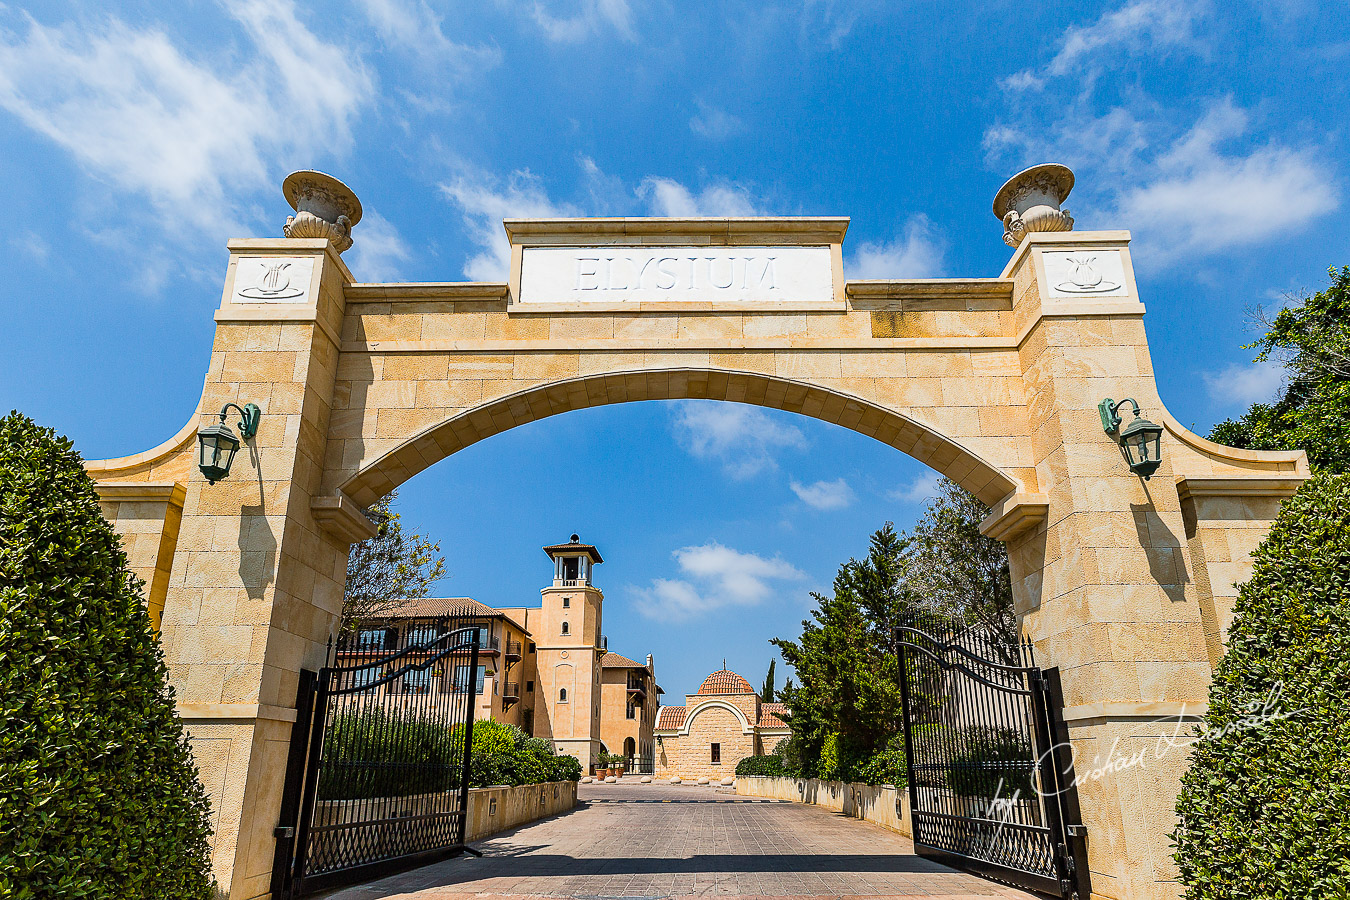 The entrance gate of the beautiful Elysium Hotel in Paphos.